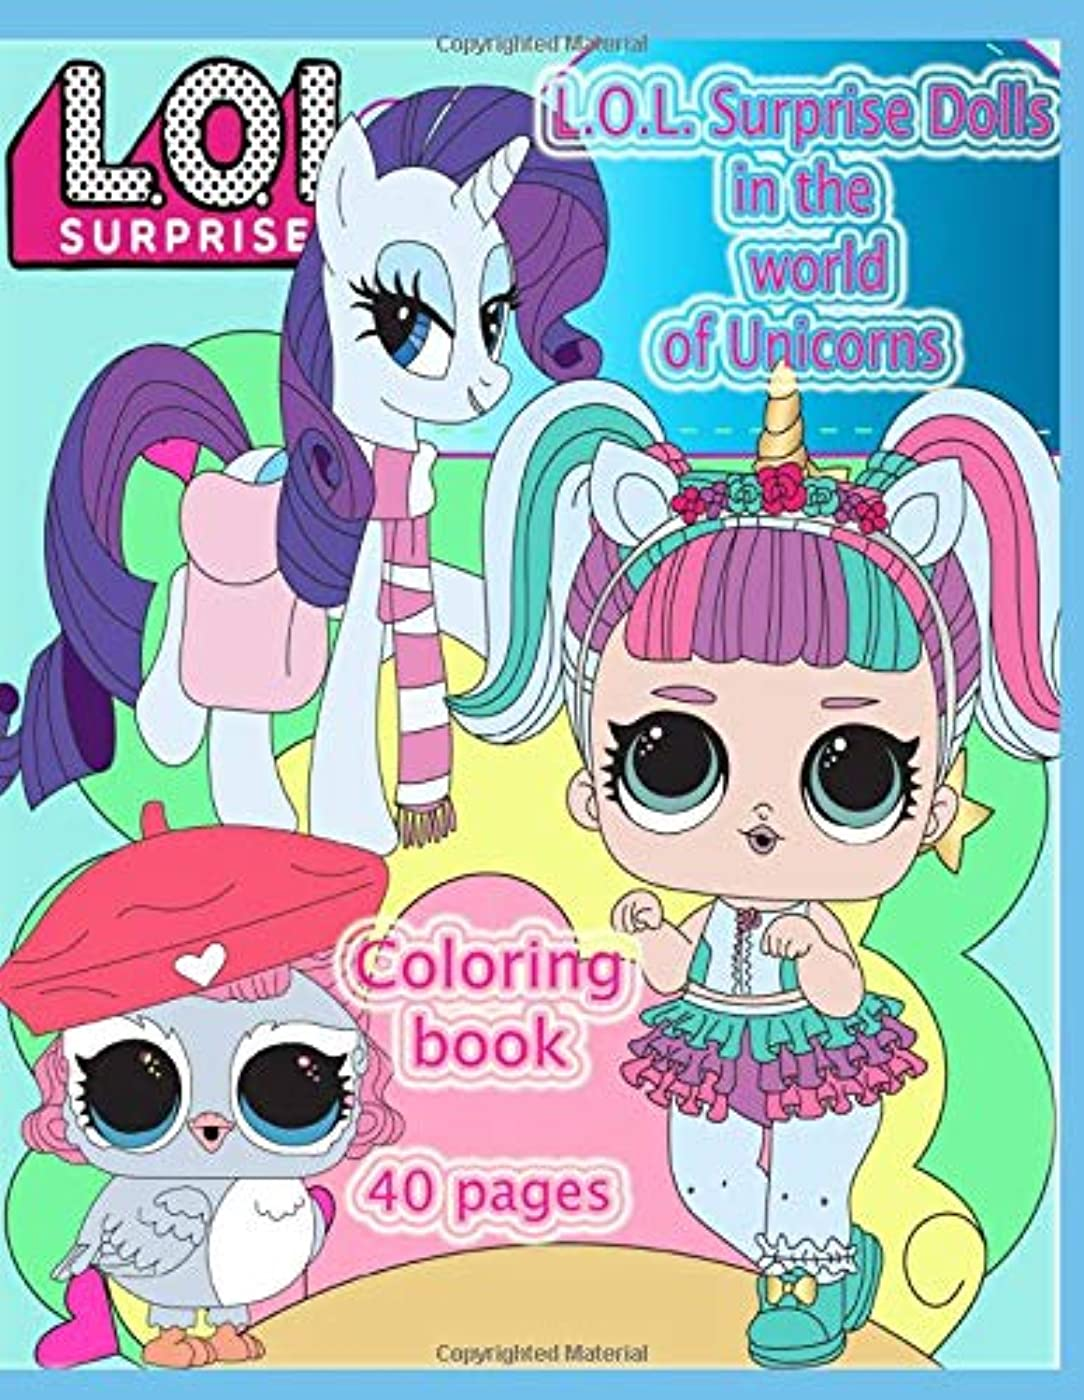 ミシン重要ドライブL.O.L. Surprise Dolls  in the world of Unicorns: Coloring booK: 40 pages